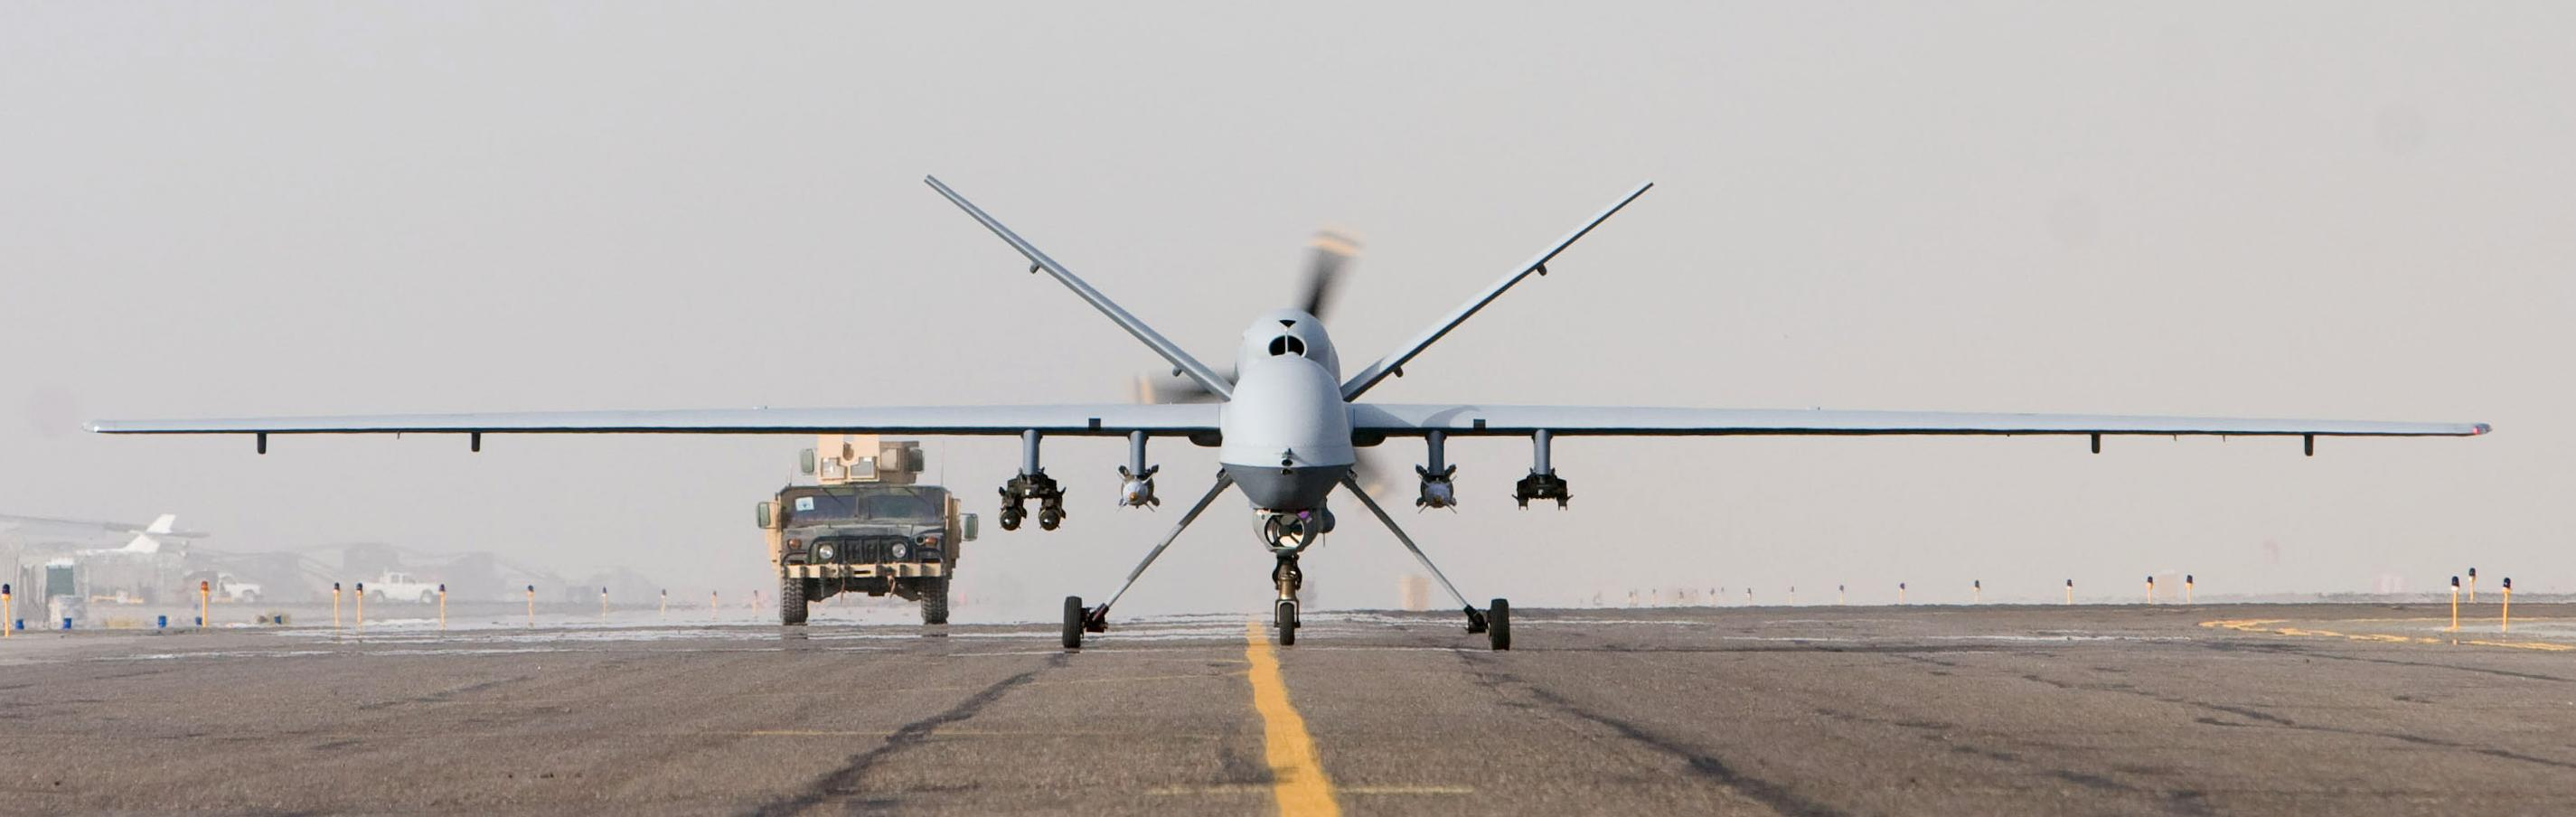 MQ-9_Afghanistan_takeoff_1_Oct_07